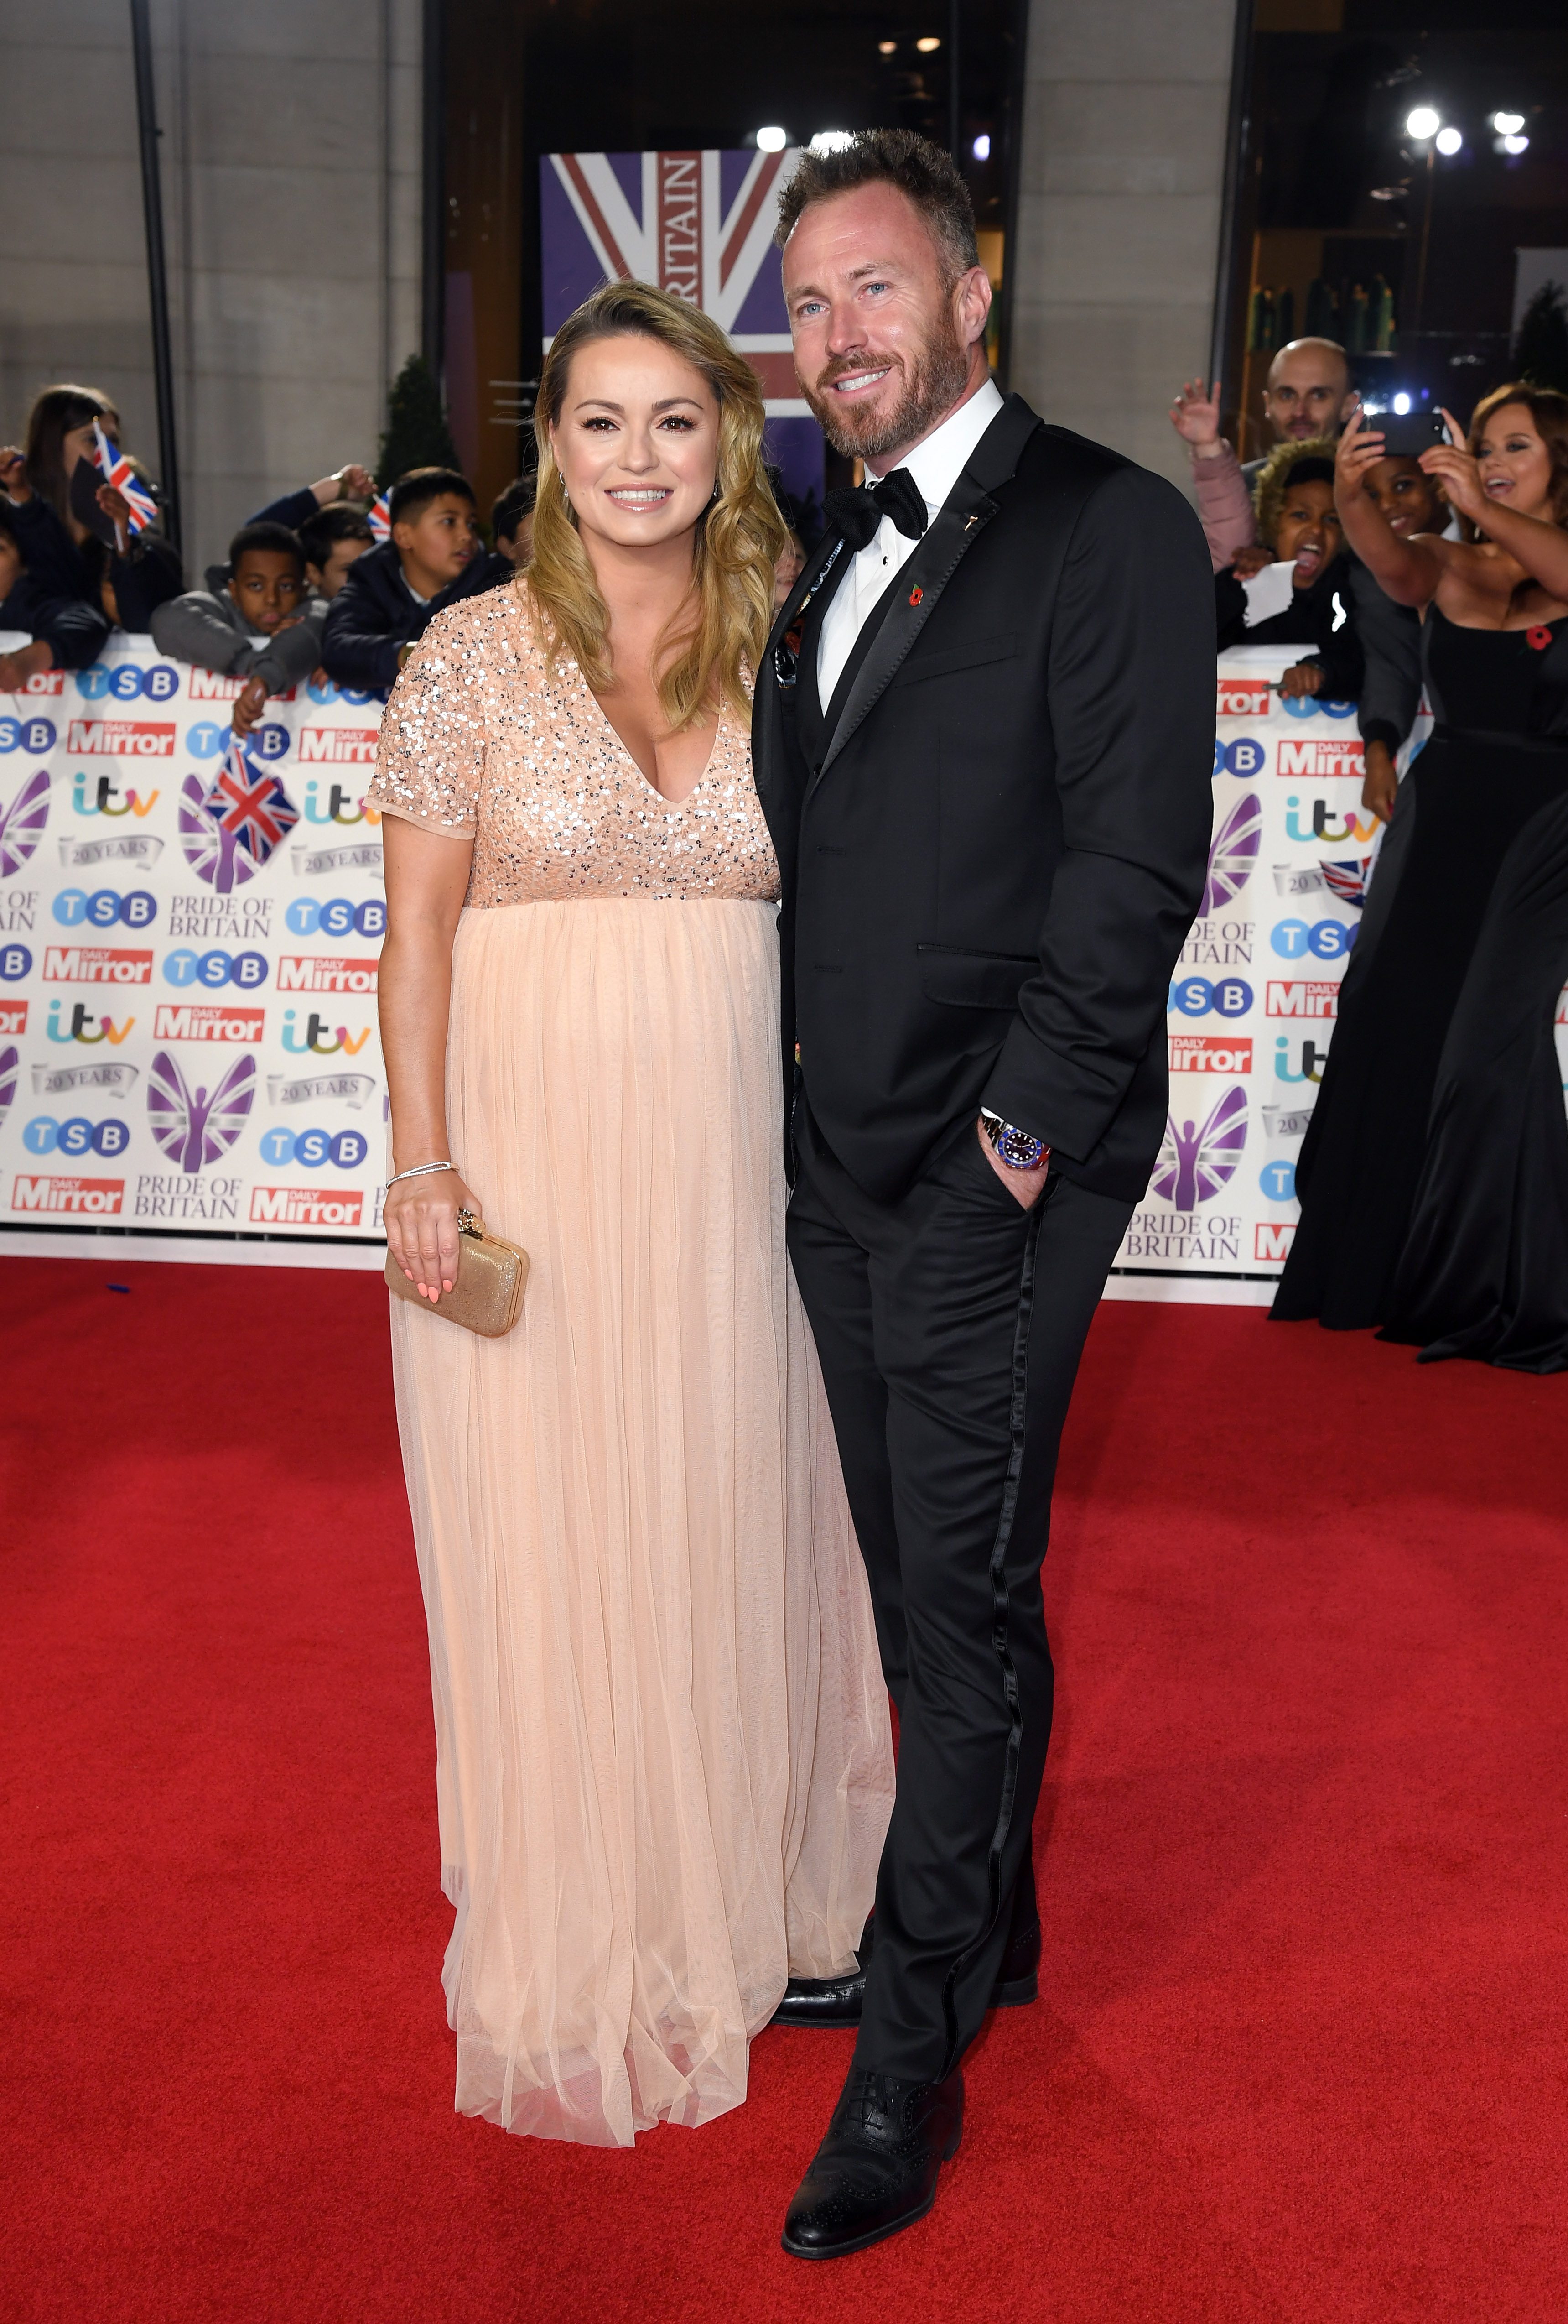 Ola Jordan and James Jordan attend the Pride Of Britain Awards 2019 at The Grosvenor House Hotel on October 28, 2019 in London, England. (Photo by Karwai Tang/WireImage)